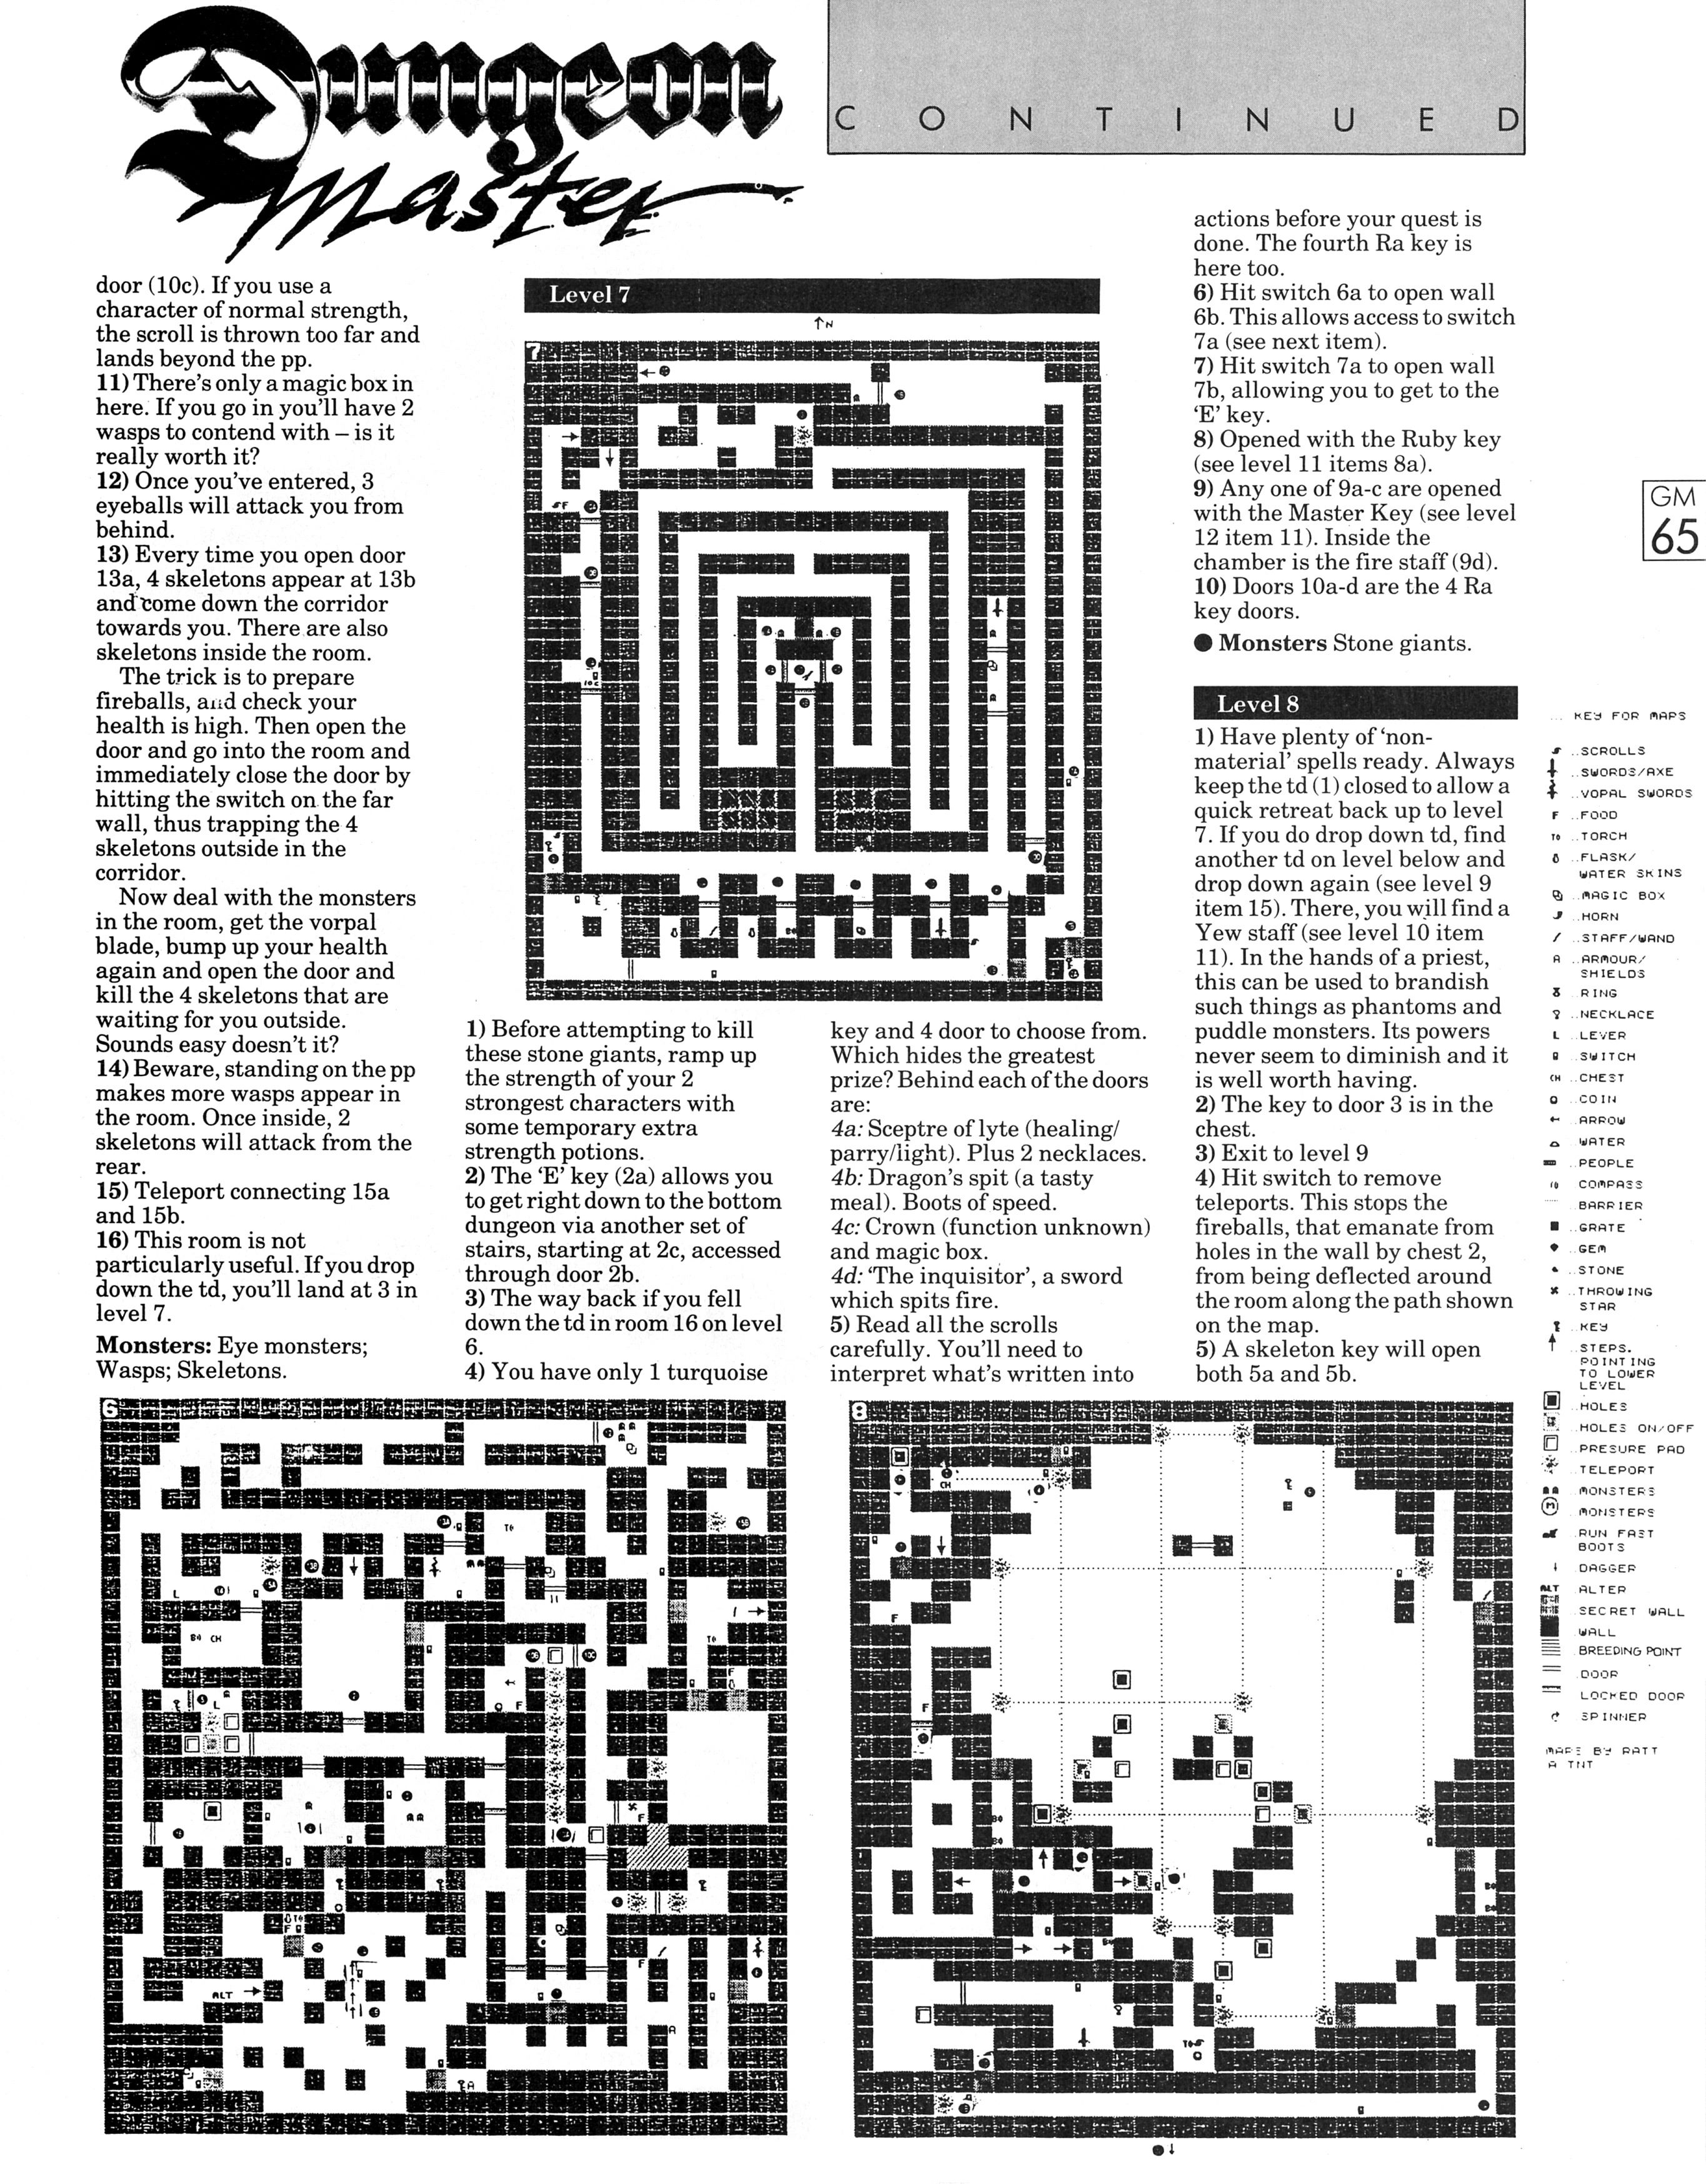 Dungeon Master Guide published in British magazine 'Game Master', Vol 1 No 2 October 1988, Page 65